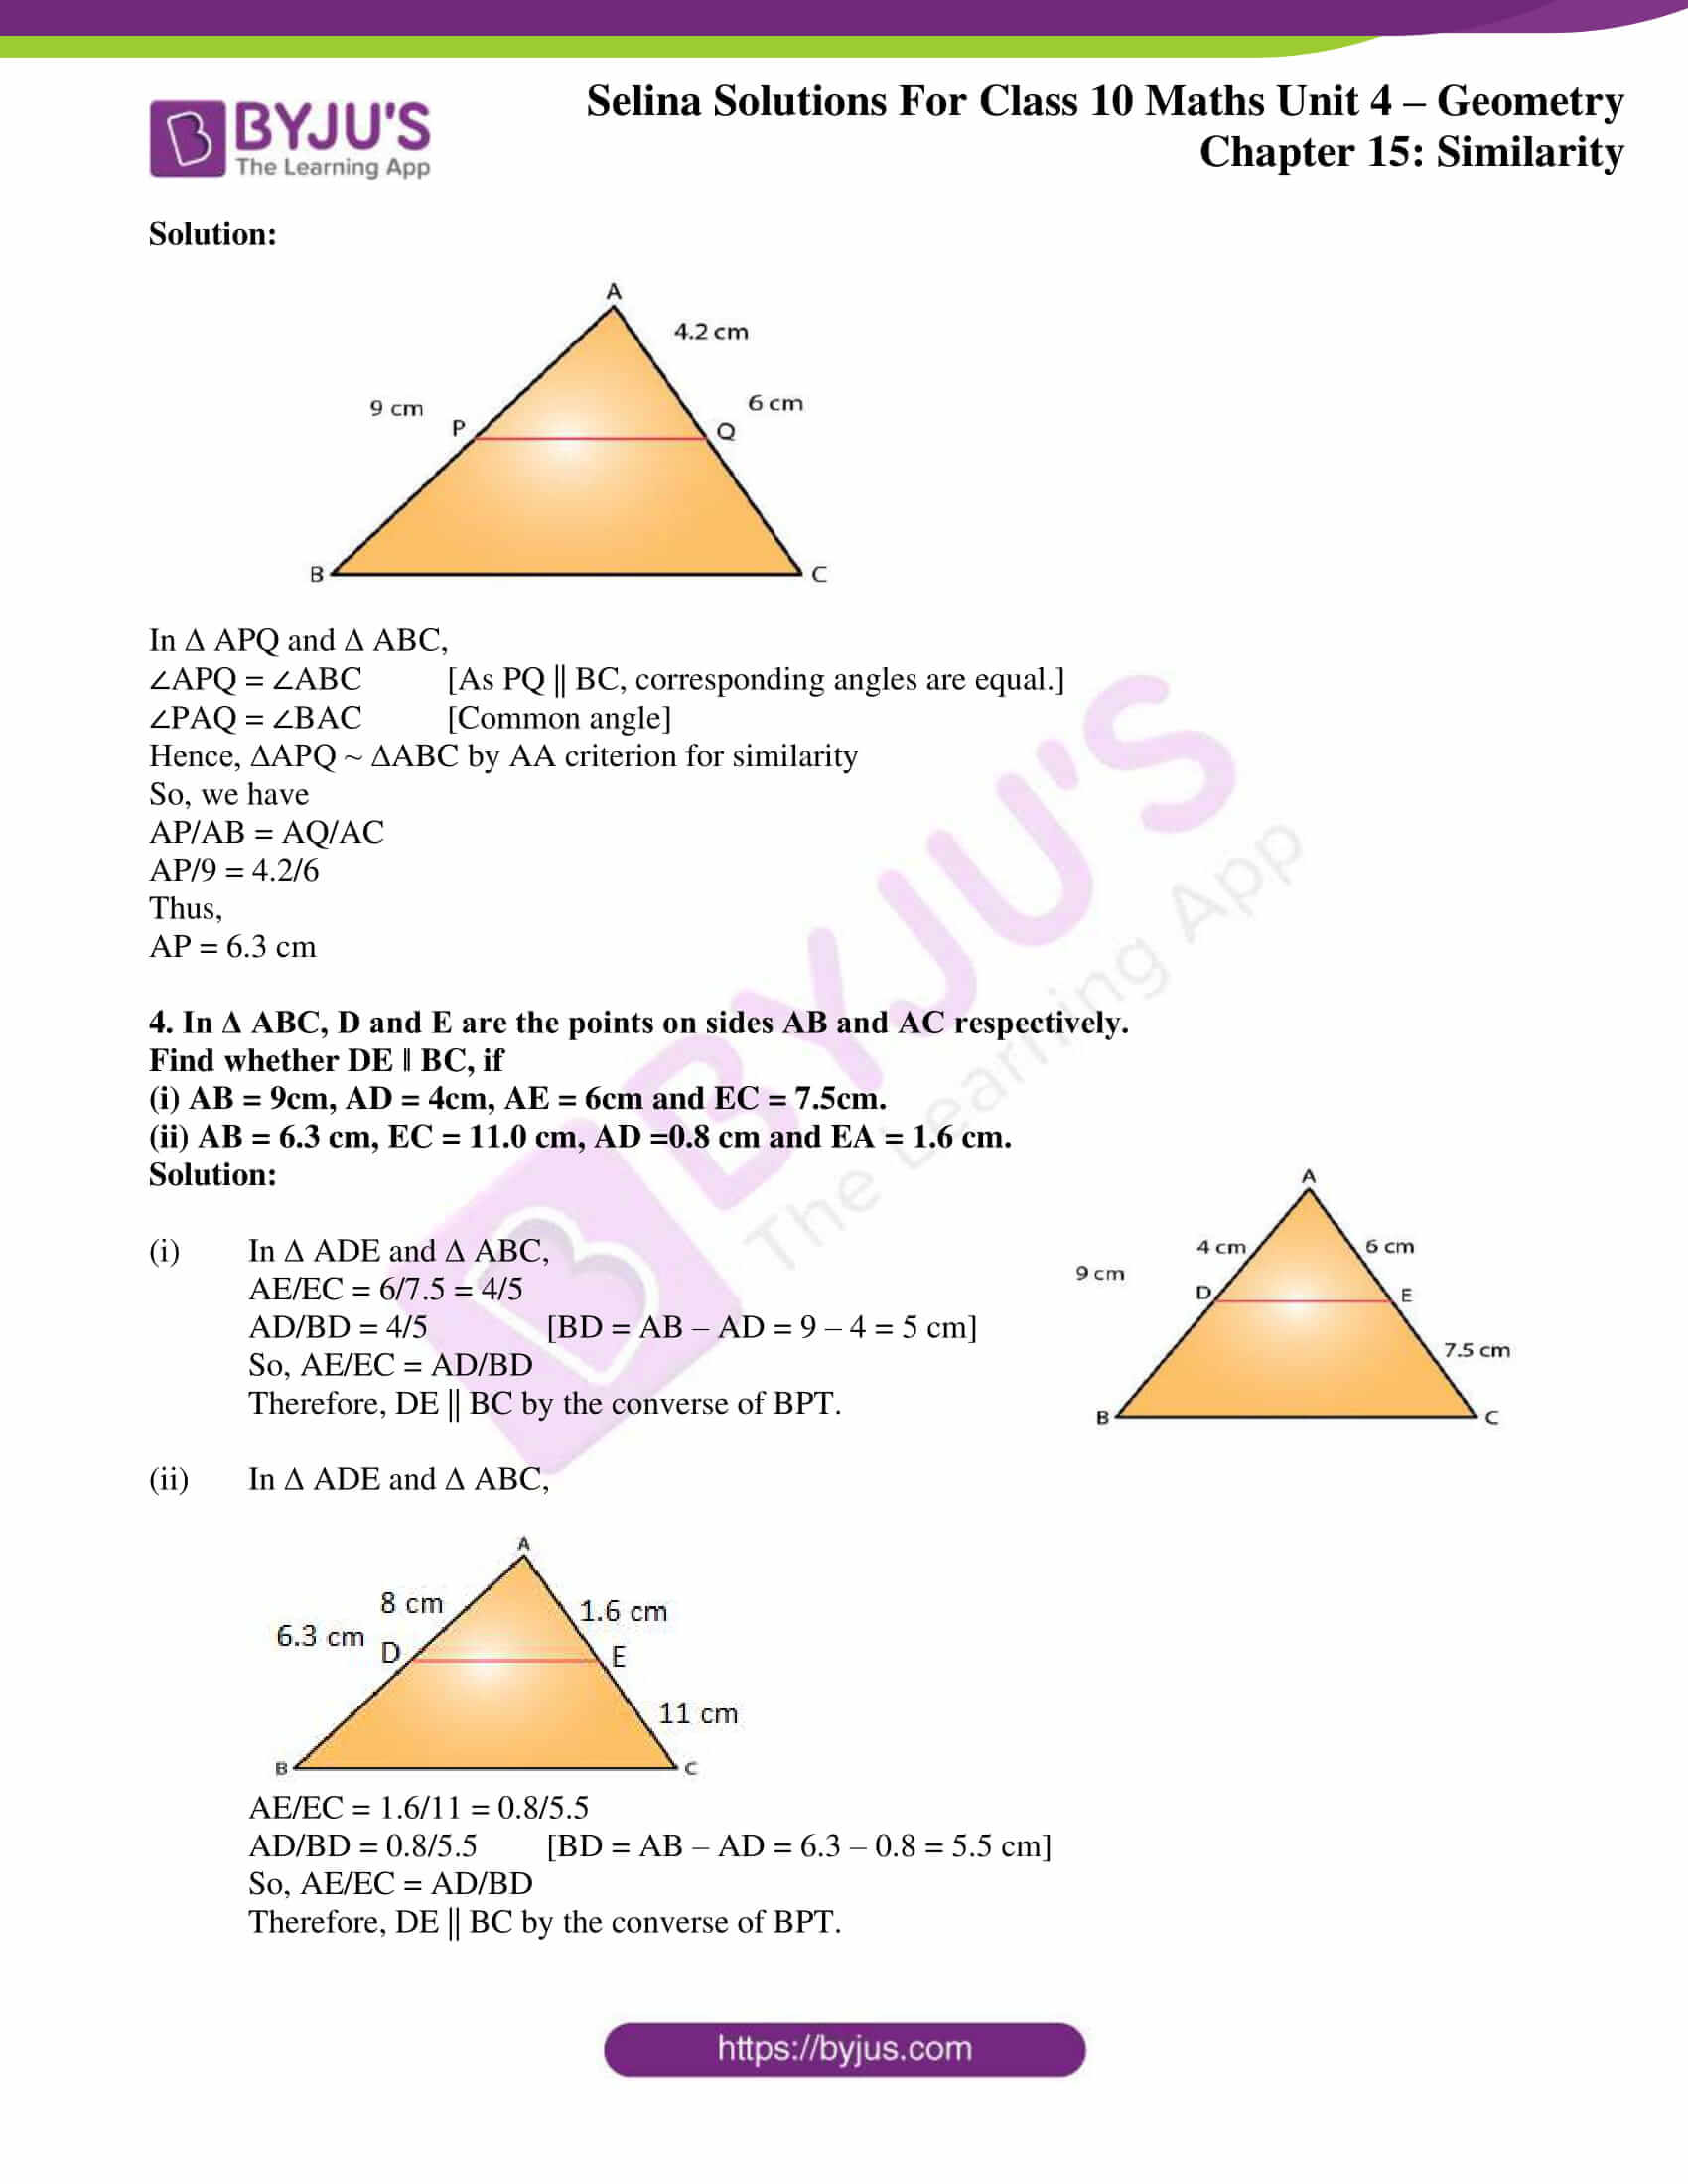 selina solution concise maths class 10 chapter 15 ex b 3